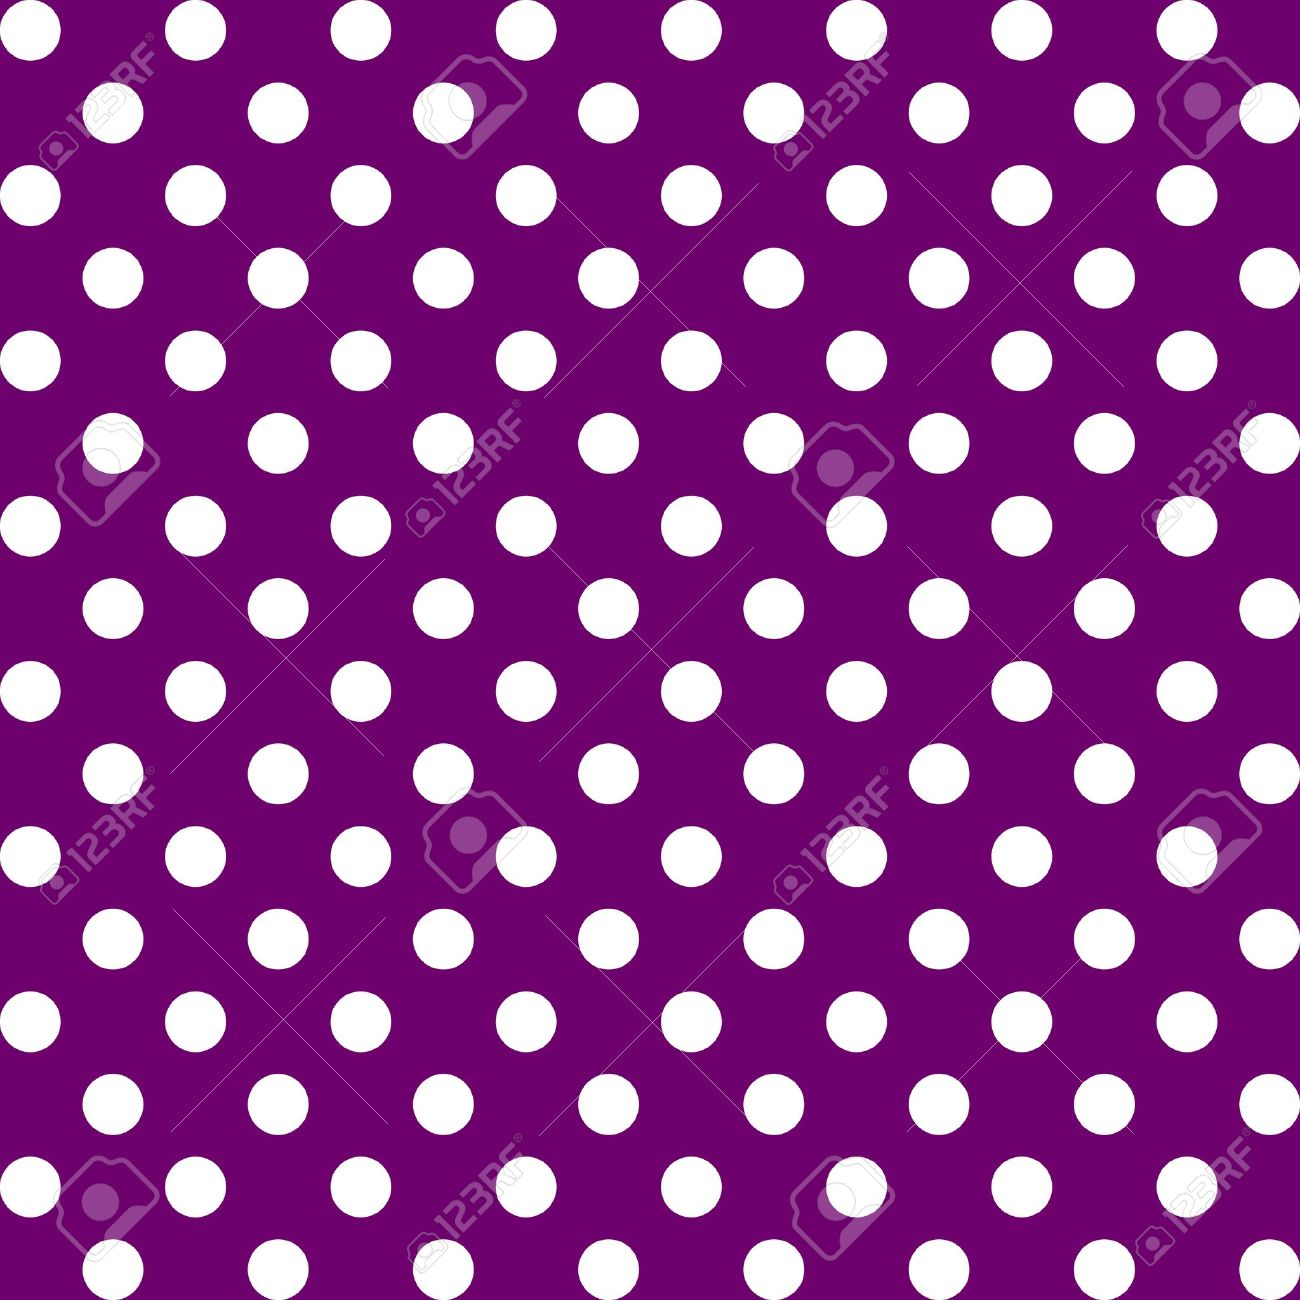 Big Dot Purple Wallpaper Best Background Image Source From This